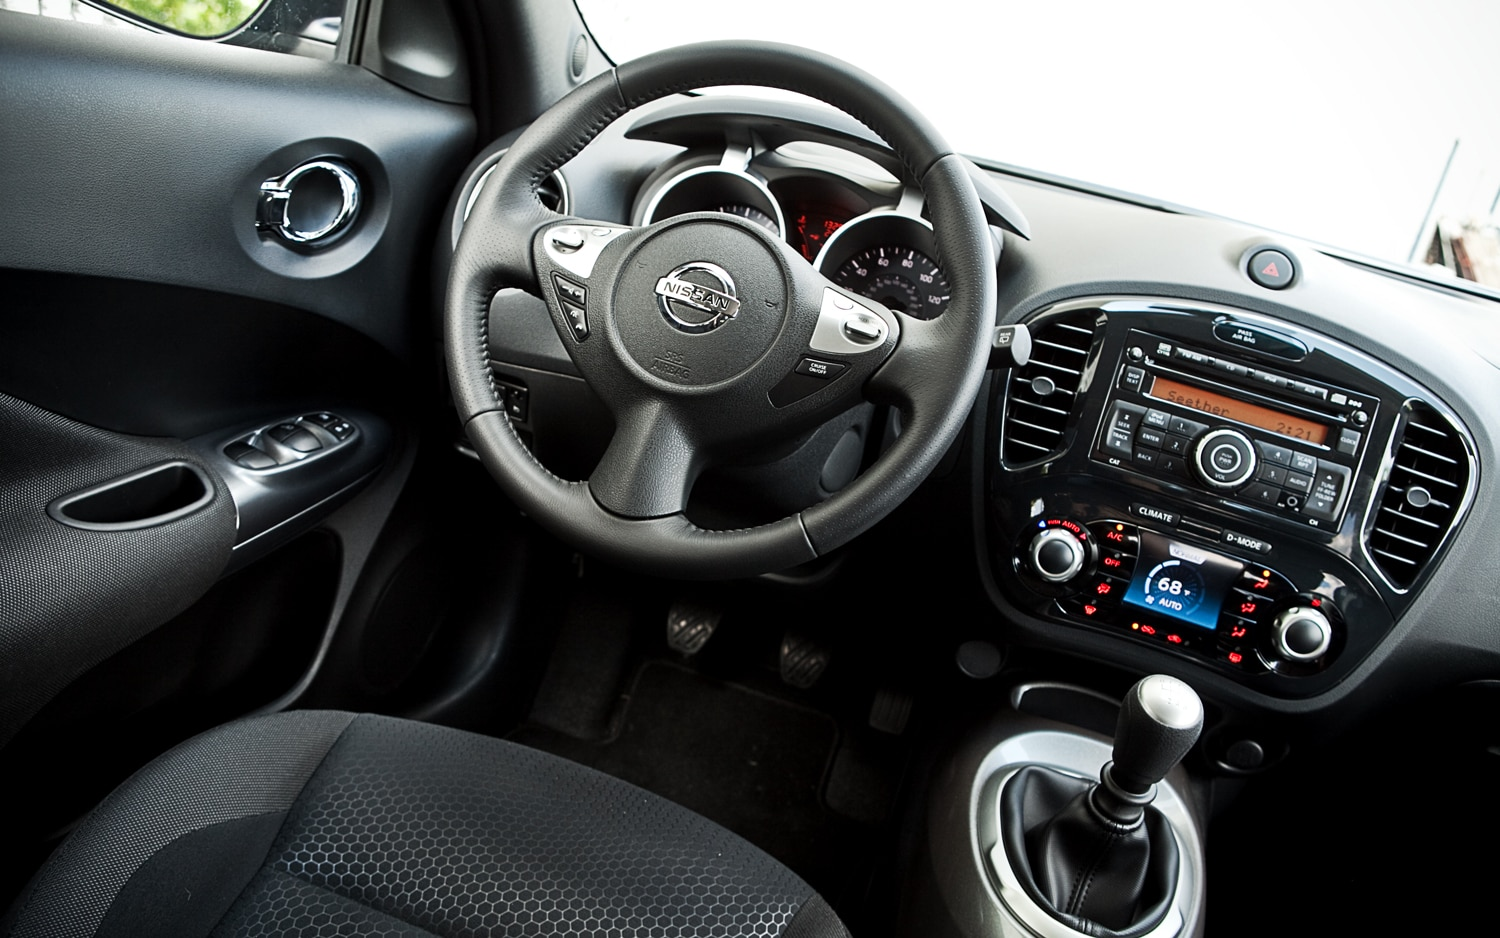 2011 Nissan Juke Sv Fwd M  T - Four Seasons Introduction